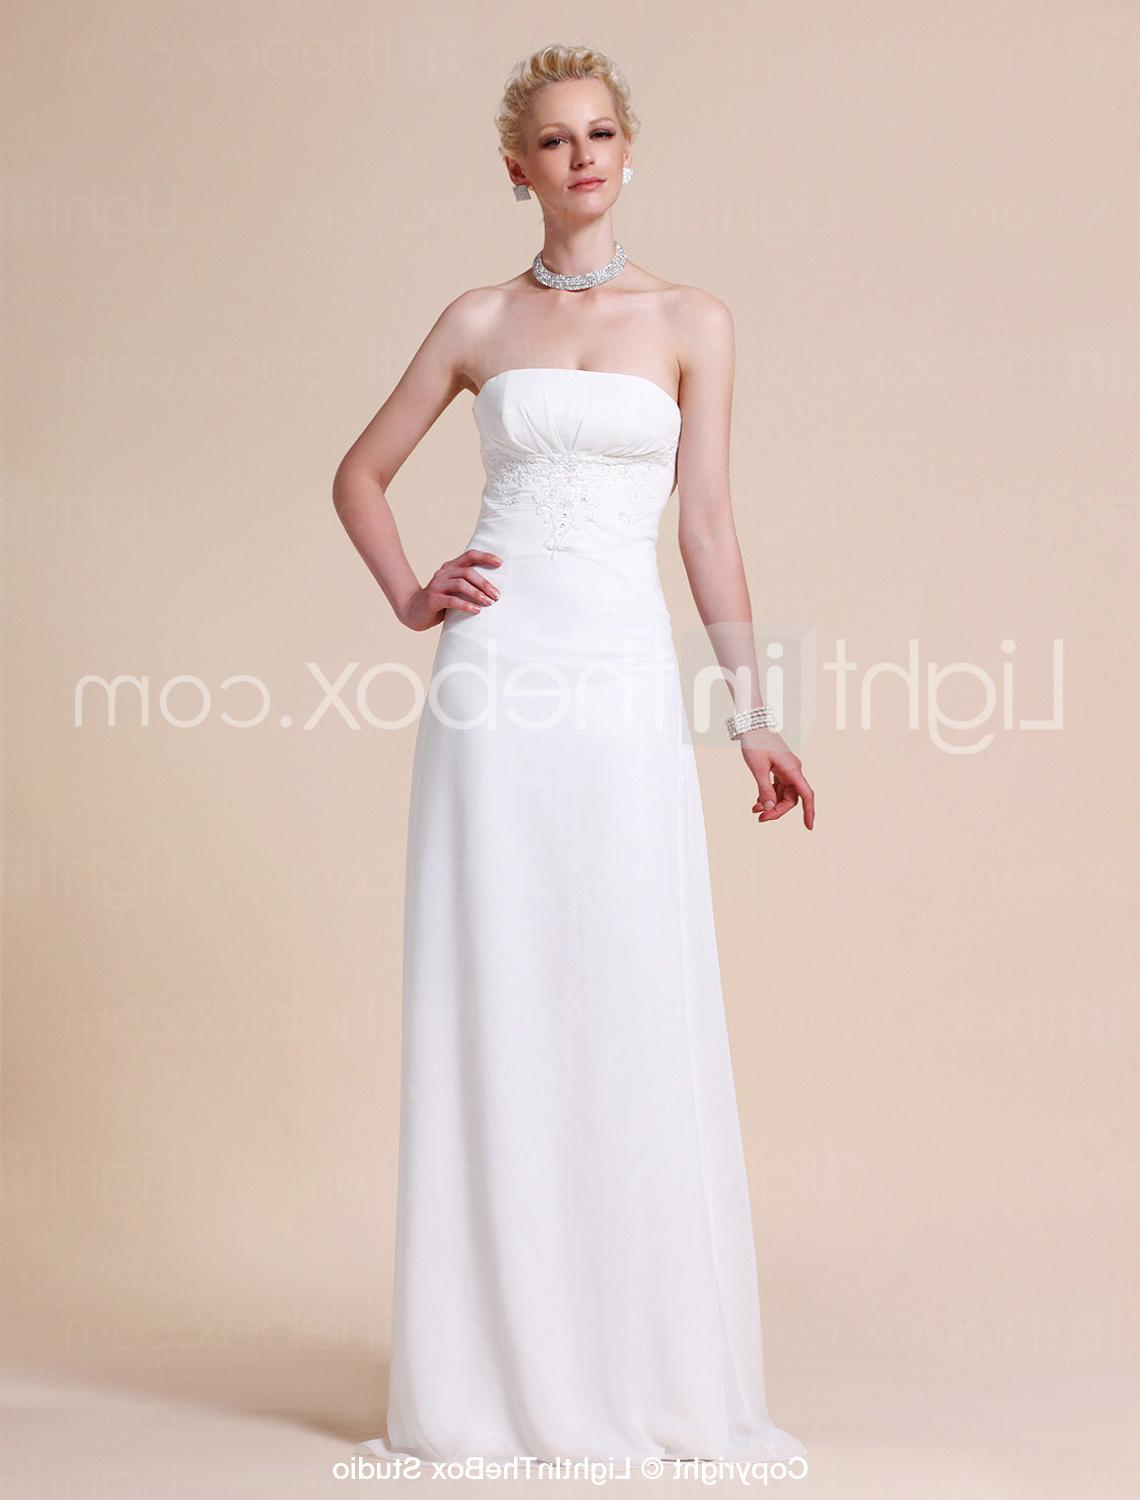 Chiffon Wedding Dress With